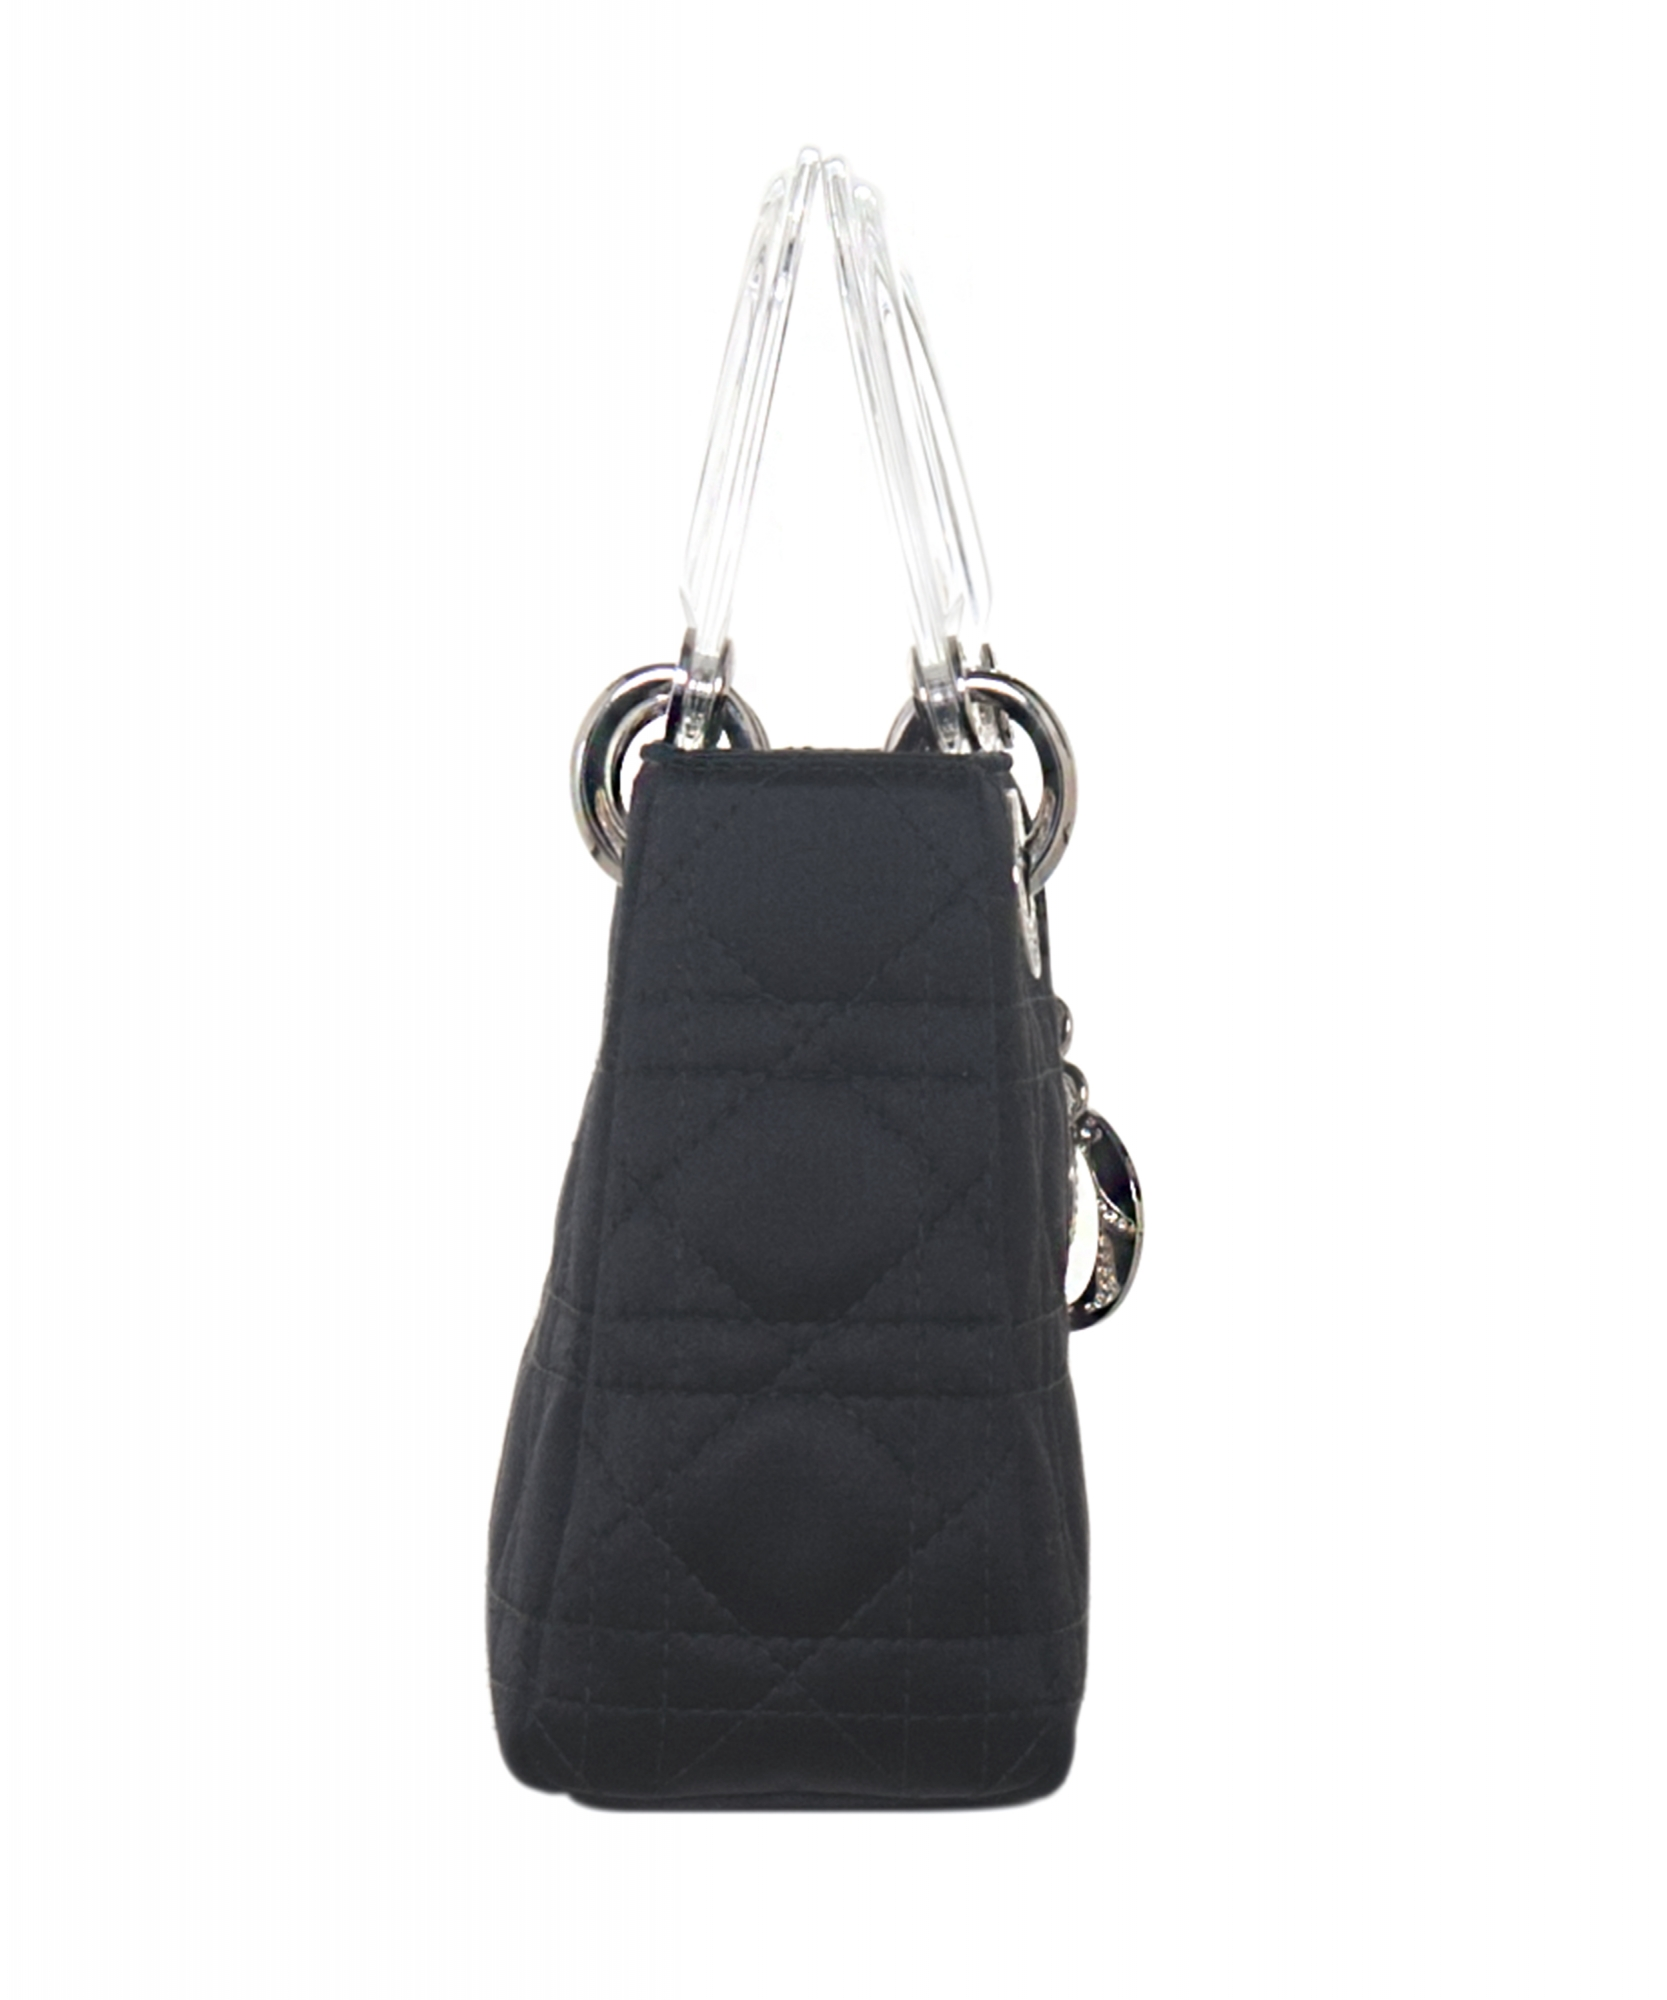 d6c593005d2 ... Christian Dior Mini Satin 'Lady Dior' Bag. Touch to zoom